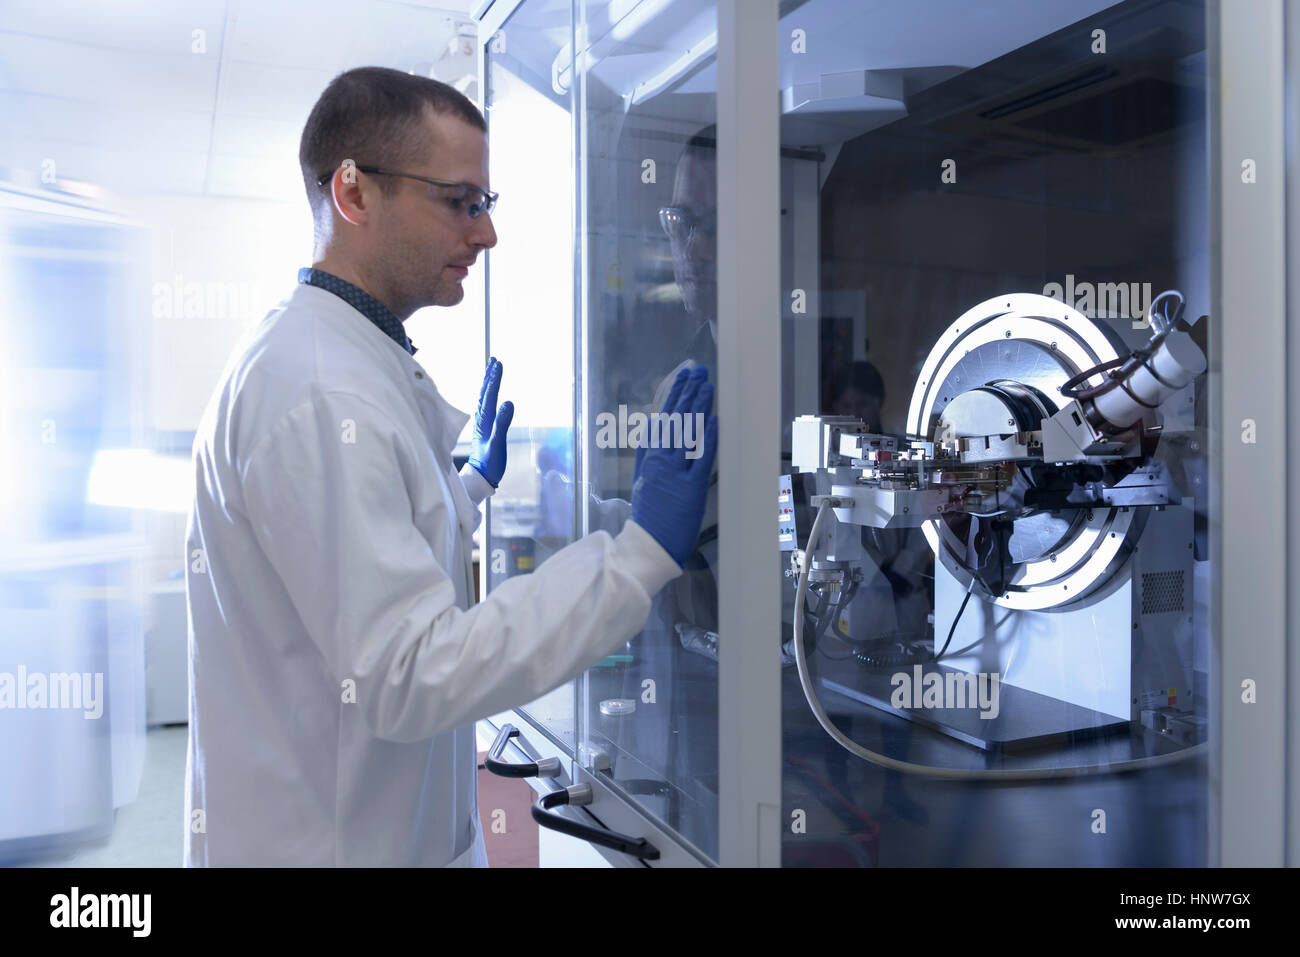 Scientist operating crystal x-ray diffraction machine in crystal engineering research laboratory - Stock Image